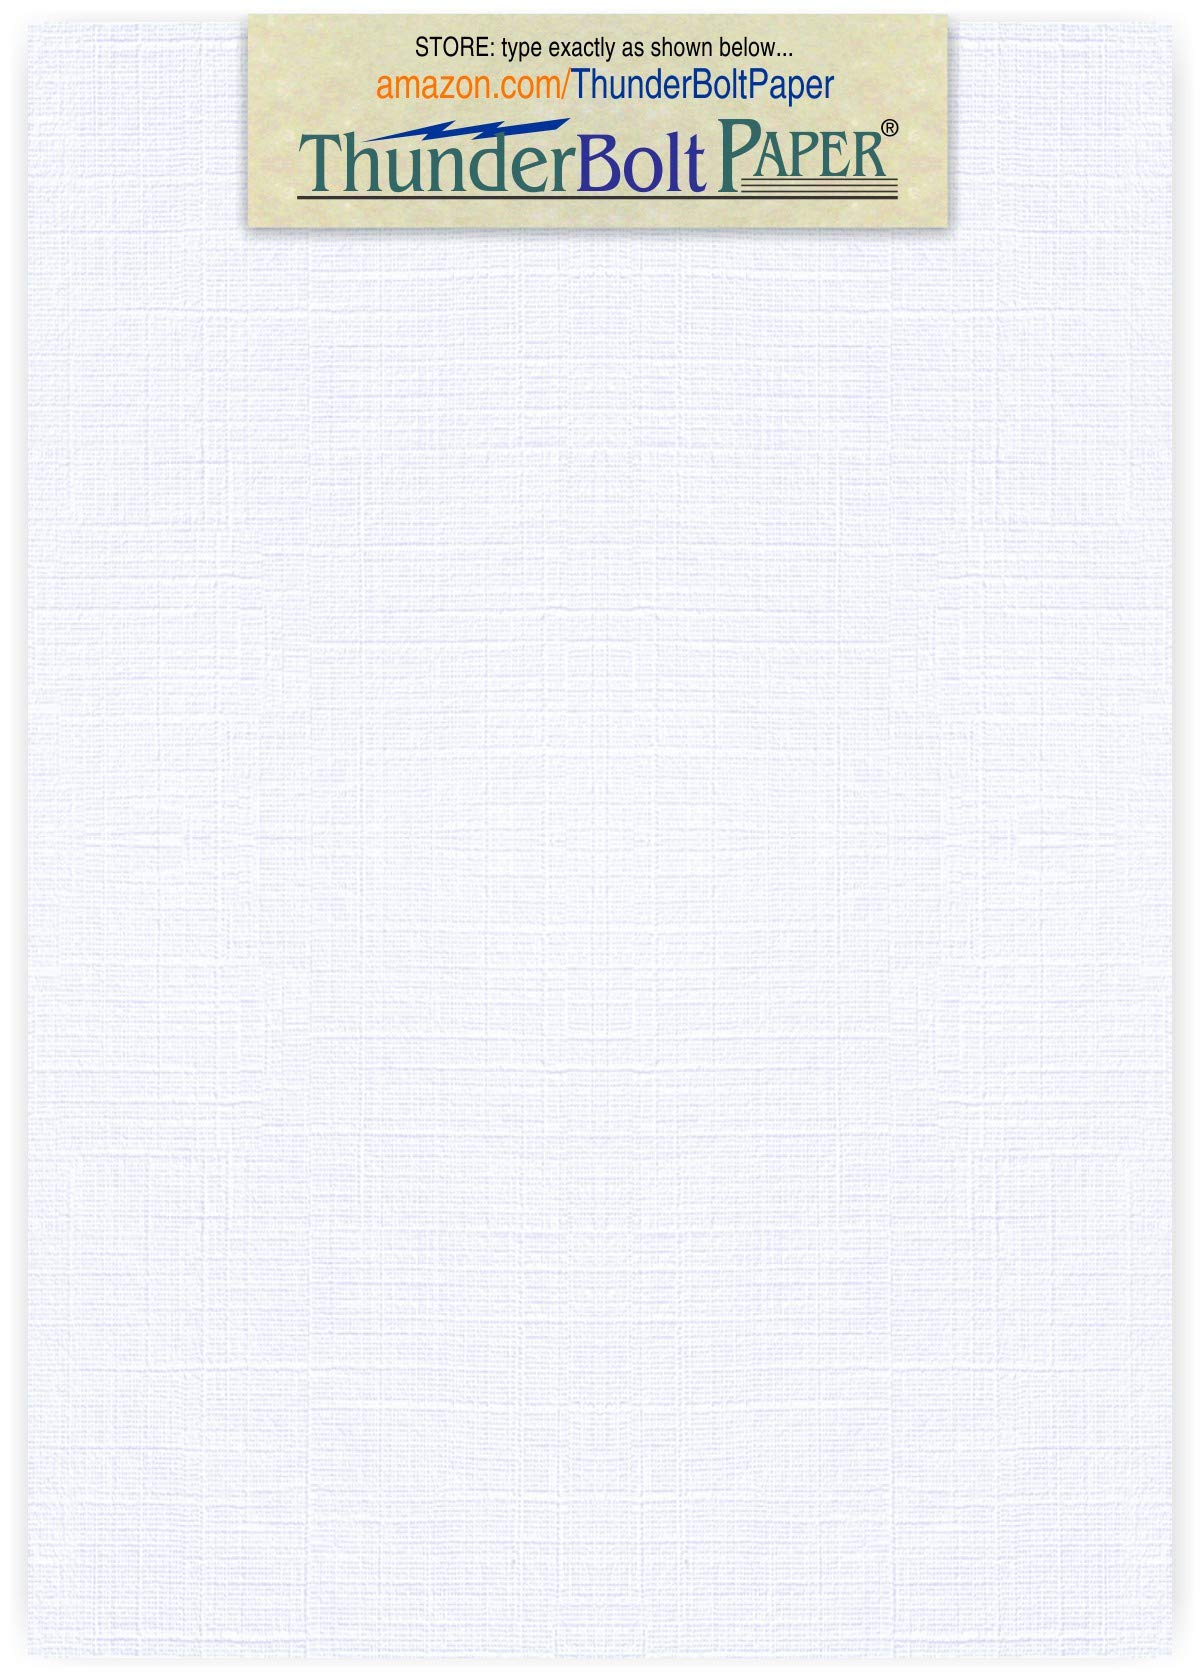 750 Bright White Linen 80# Cover Paper Sheets - 5'' X 7'' (5X7 Inches) Photo|Card|Frame Size - 80 lb/Pound Card Weight - Fine Linen Textured Finish - Quality Cardstock